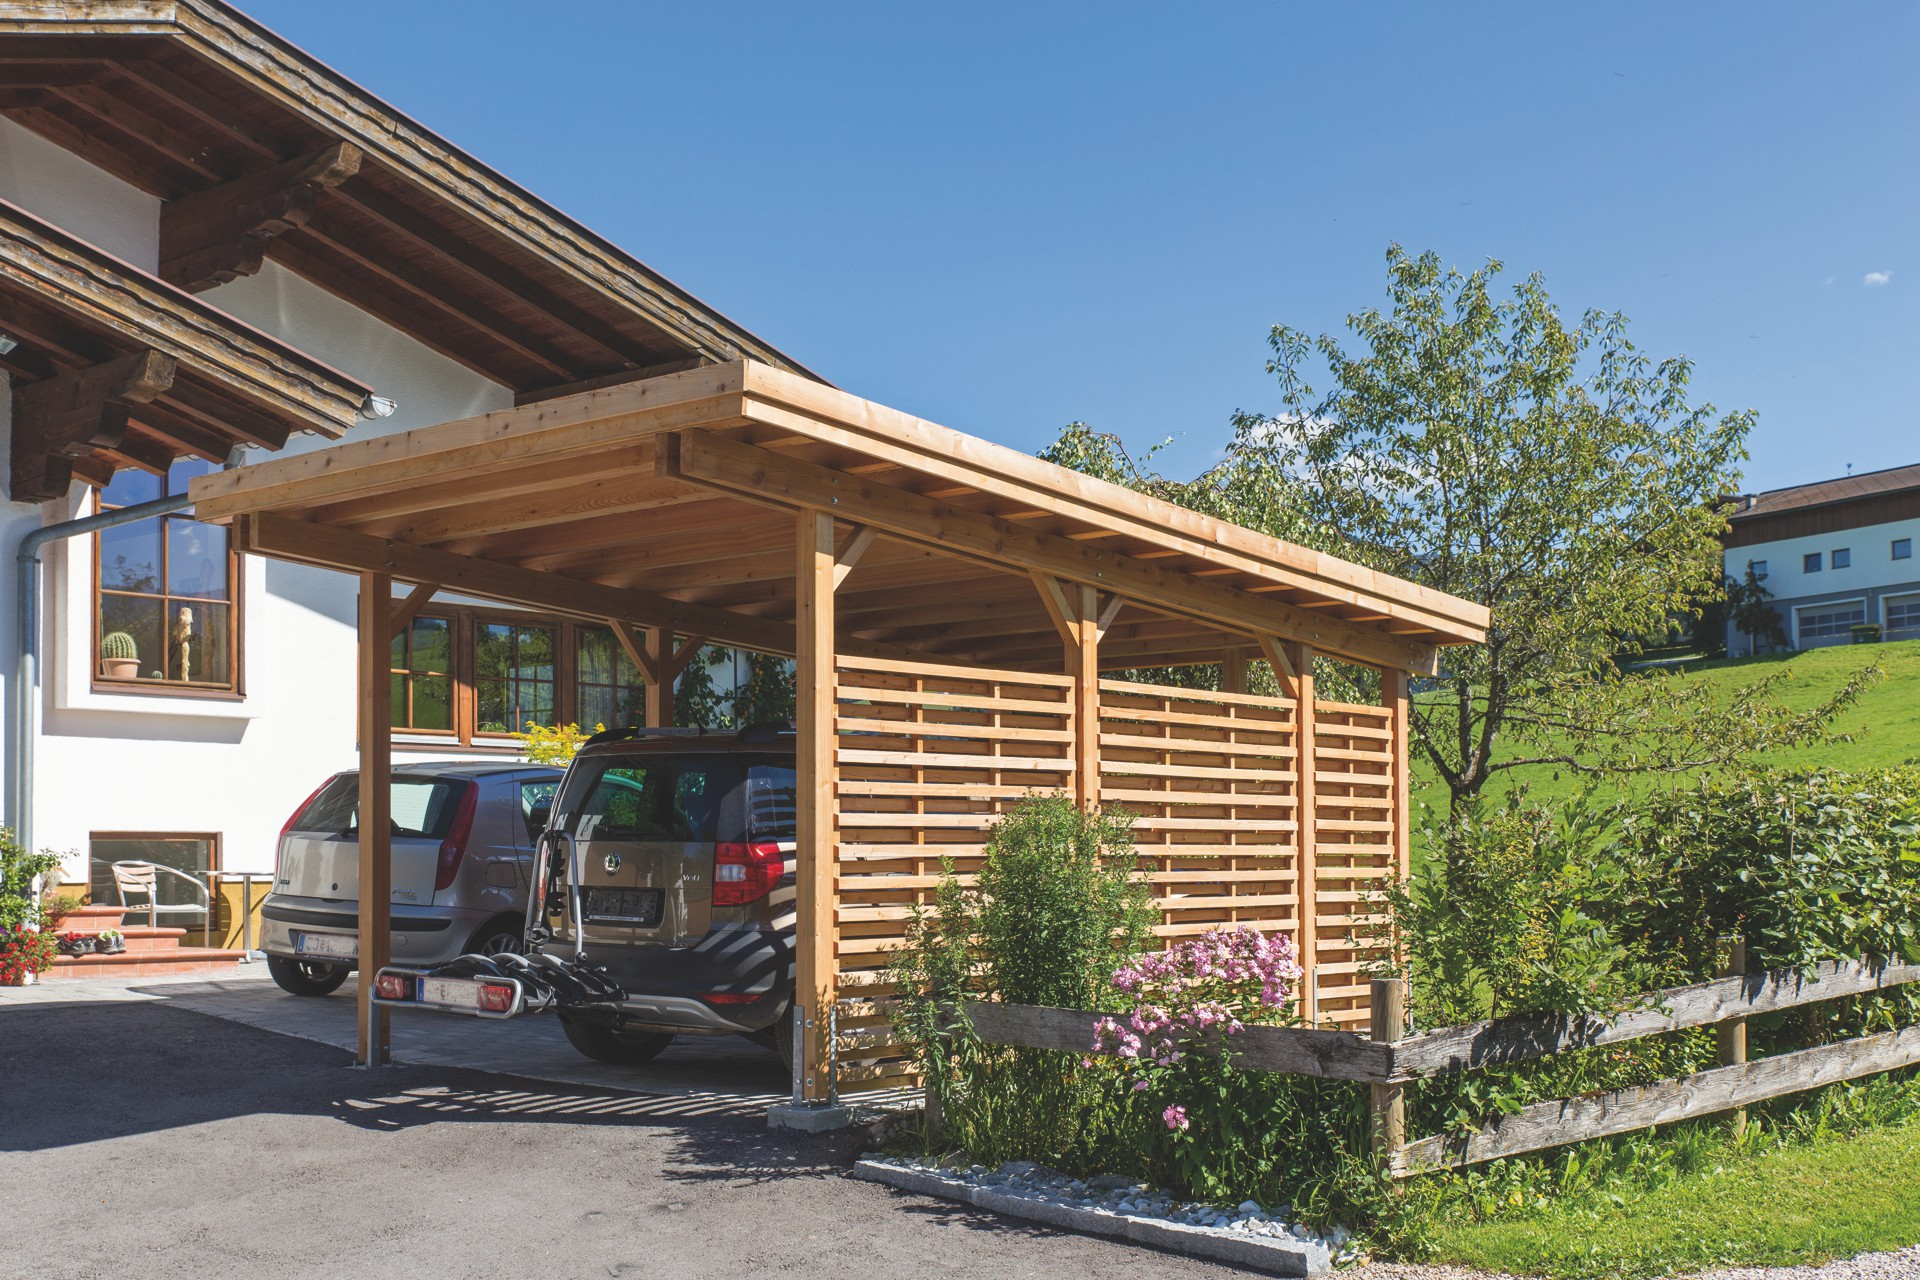 holz f r carport carport mit holz verkleiden holz im garten bausteff handels gesmbh carport. Black Bedroom Furniture Sets. Home Design Ideas